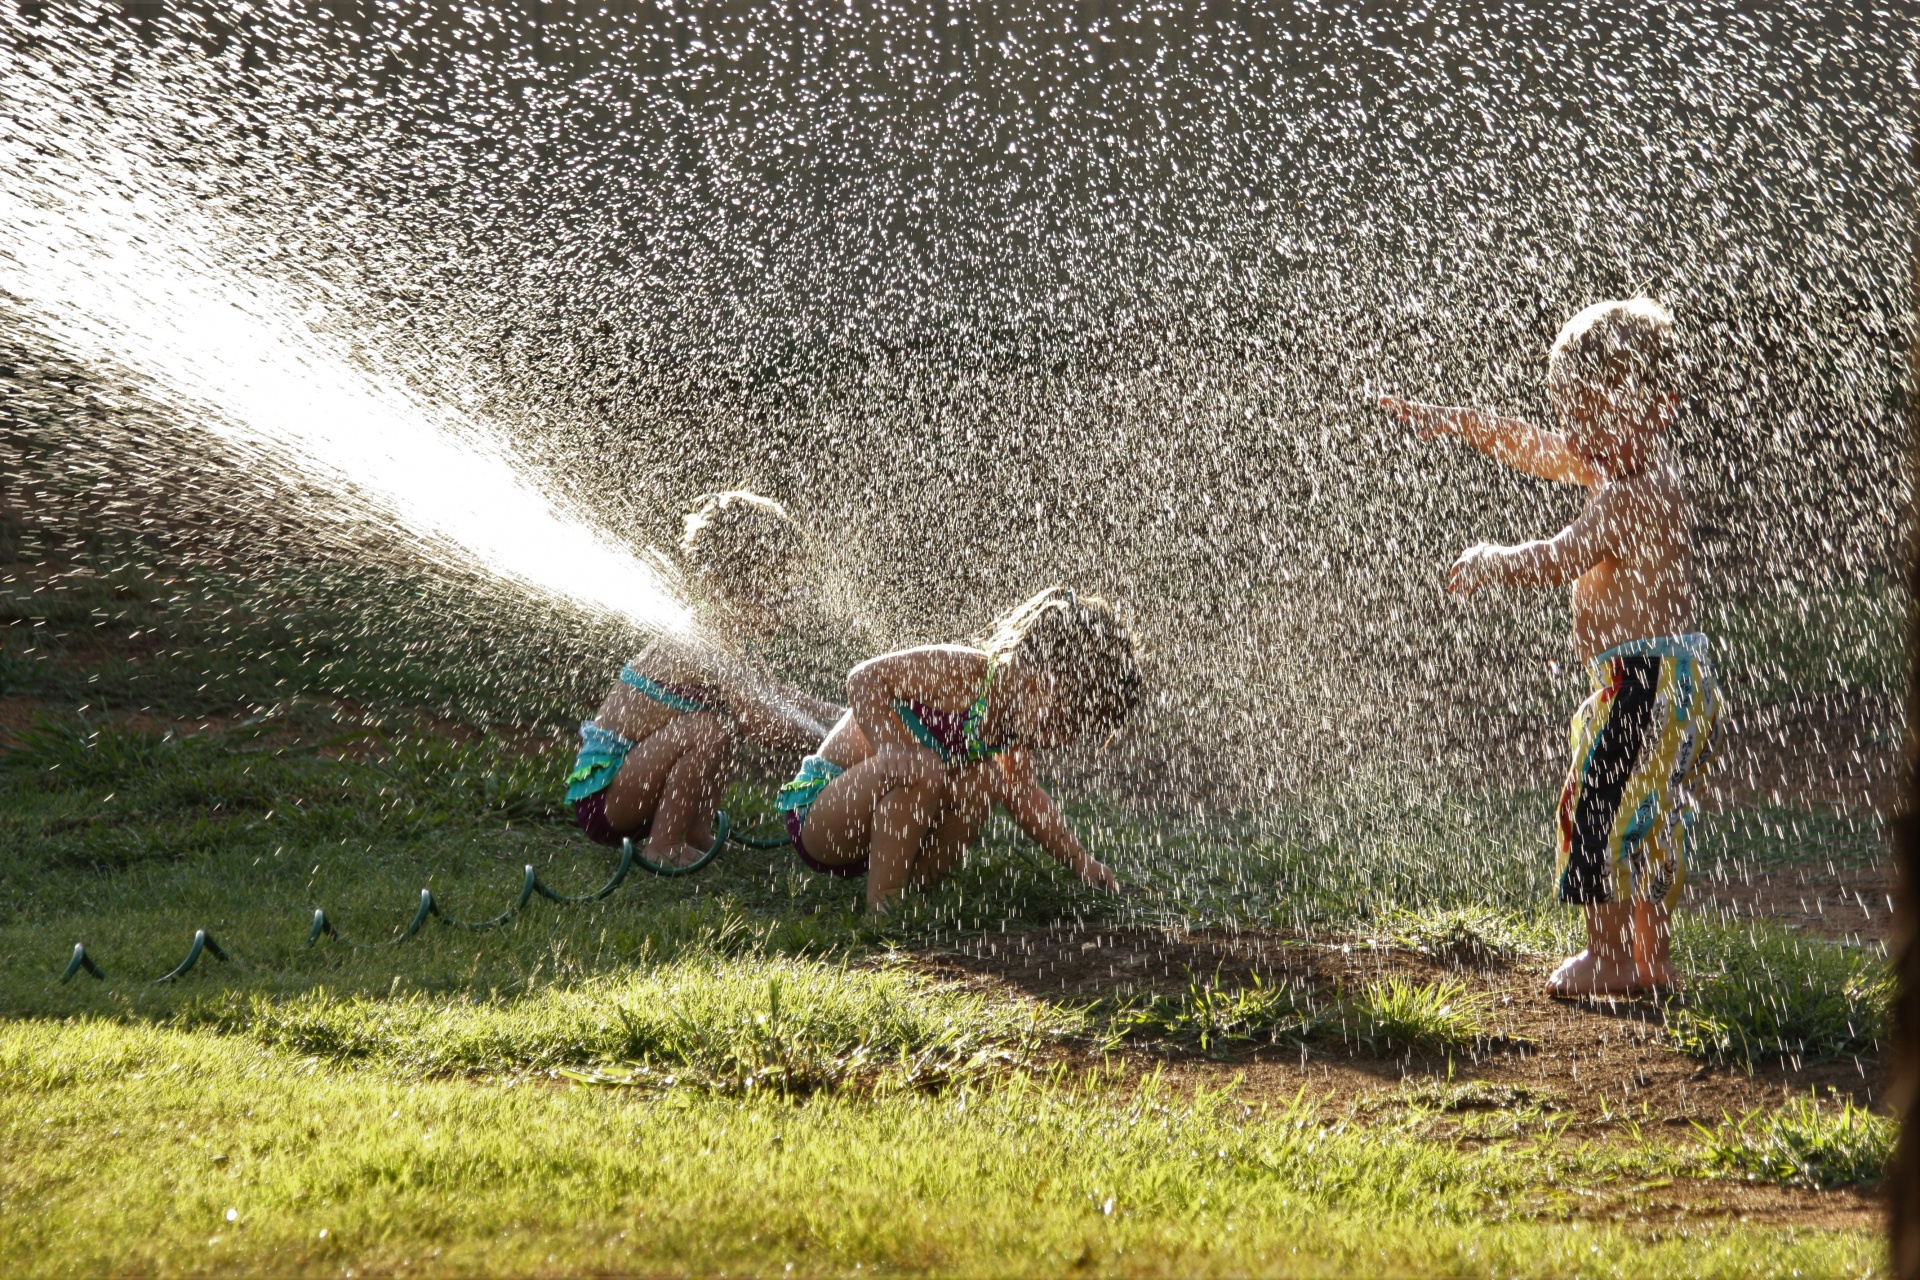 Children playing in water sprinkler